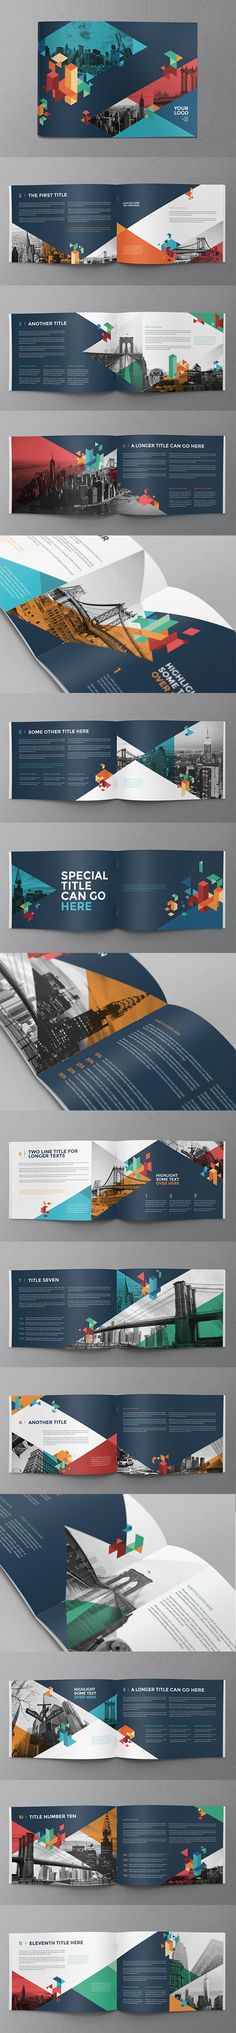 Buy Colorful Blue Brochure by AbraDesign on GraphicRiver. COLORFUL BLUE BROCHURE This brochure is an ideal way to showcase your properties. It is a horizontal design, availabl. Design Brochure, Booklet Design, Brochure Layout, Brochure Template, Corporate Design, Corporate Brochure, Web Design, Layout Design, Creative Design